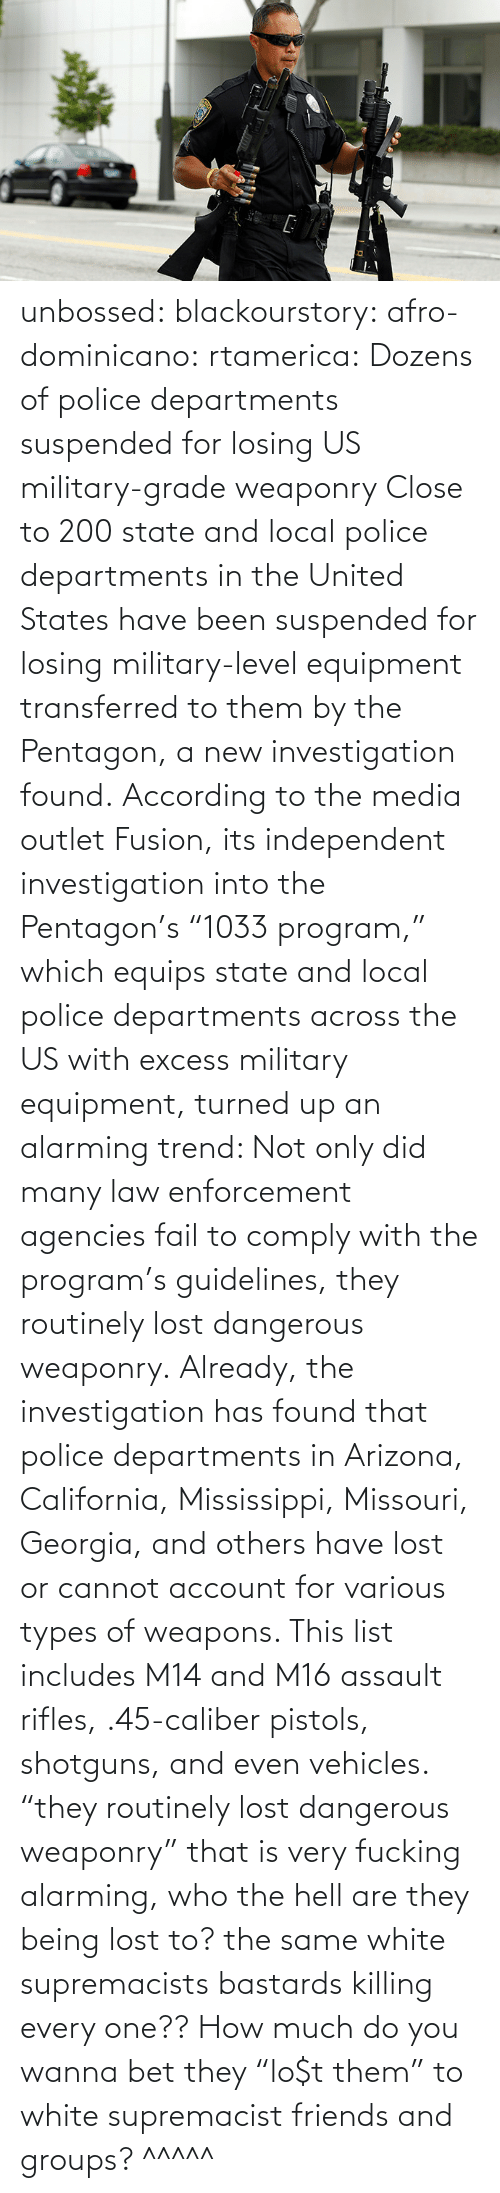 "United: unbossed: blackourstory:  afro-dominicano:  rtamerica:  Dozens of police departments suspended for losing US military-grade weaponry Close to 200 state and local police departments in the United States have been suspended for losing military-level equipment transferred to them by the Pentagon, a new investigation found. According to the media outlet Fusion, its independent investigation into the Pentagon's ""1033 program,"" which equips state and local police departments across the US with excess military equipment, turned up an alarming trend: Not only did many law enforcement agencies fail to comply with the program's guidelines, they routinely lost dangerous weaponry. Already, the investigation has found that police departments in Arizona, California, Mississippi, Missouri, Georgia, and others have lost or cannot account for various types of weapons. This list includes M14 and M16 assault rifles, .45-caliber pistols, shotguns, and even vehicles.  ""they routinely lost dangerous weaponry"" that is very fucking alarming, who the hell are they being lost to? the same white supremacists bastards killing every one??  How much do you wanna bet they ""lo$t them"" to white supremacist friends and groups?   ^^^^^"